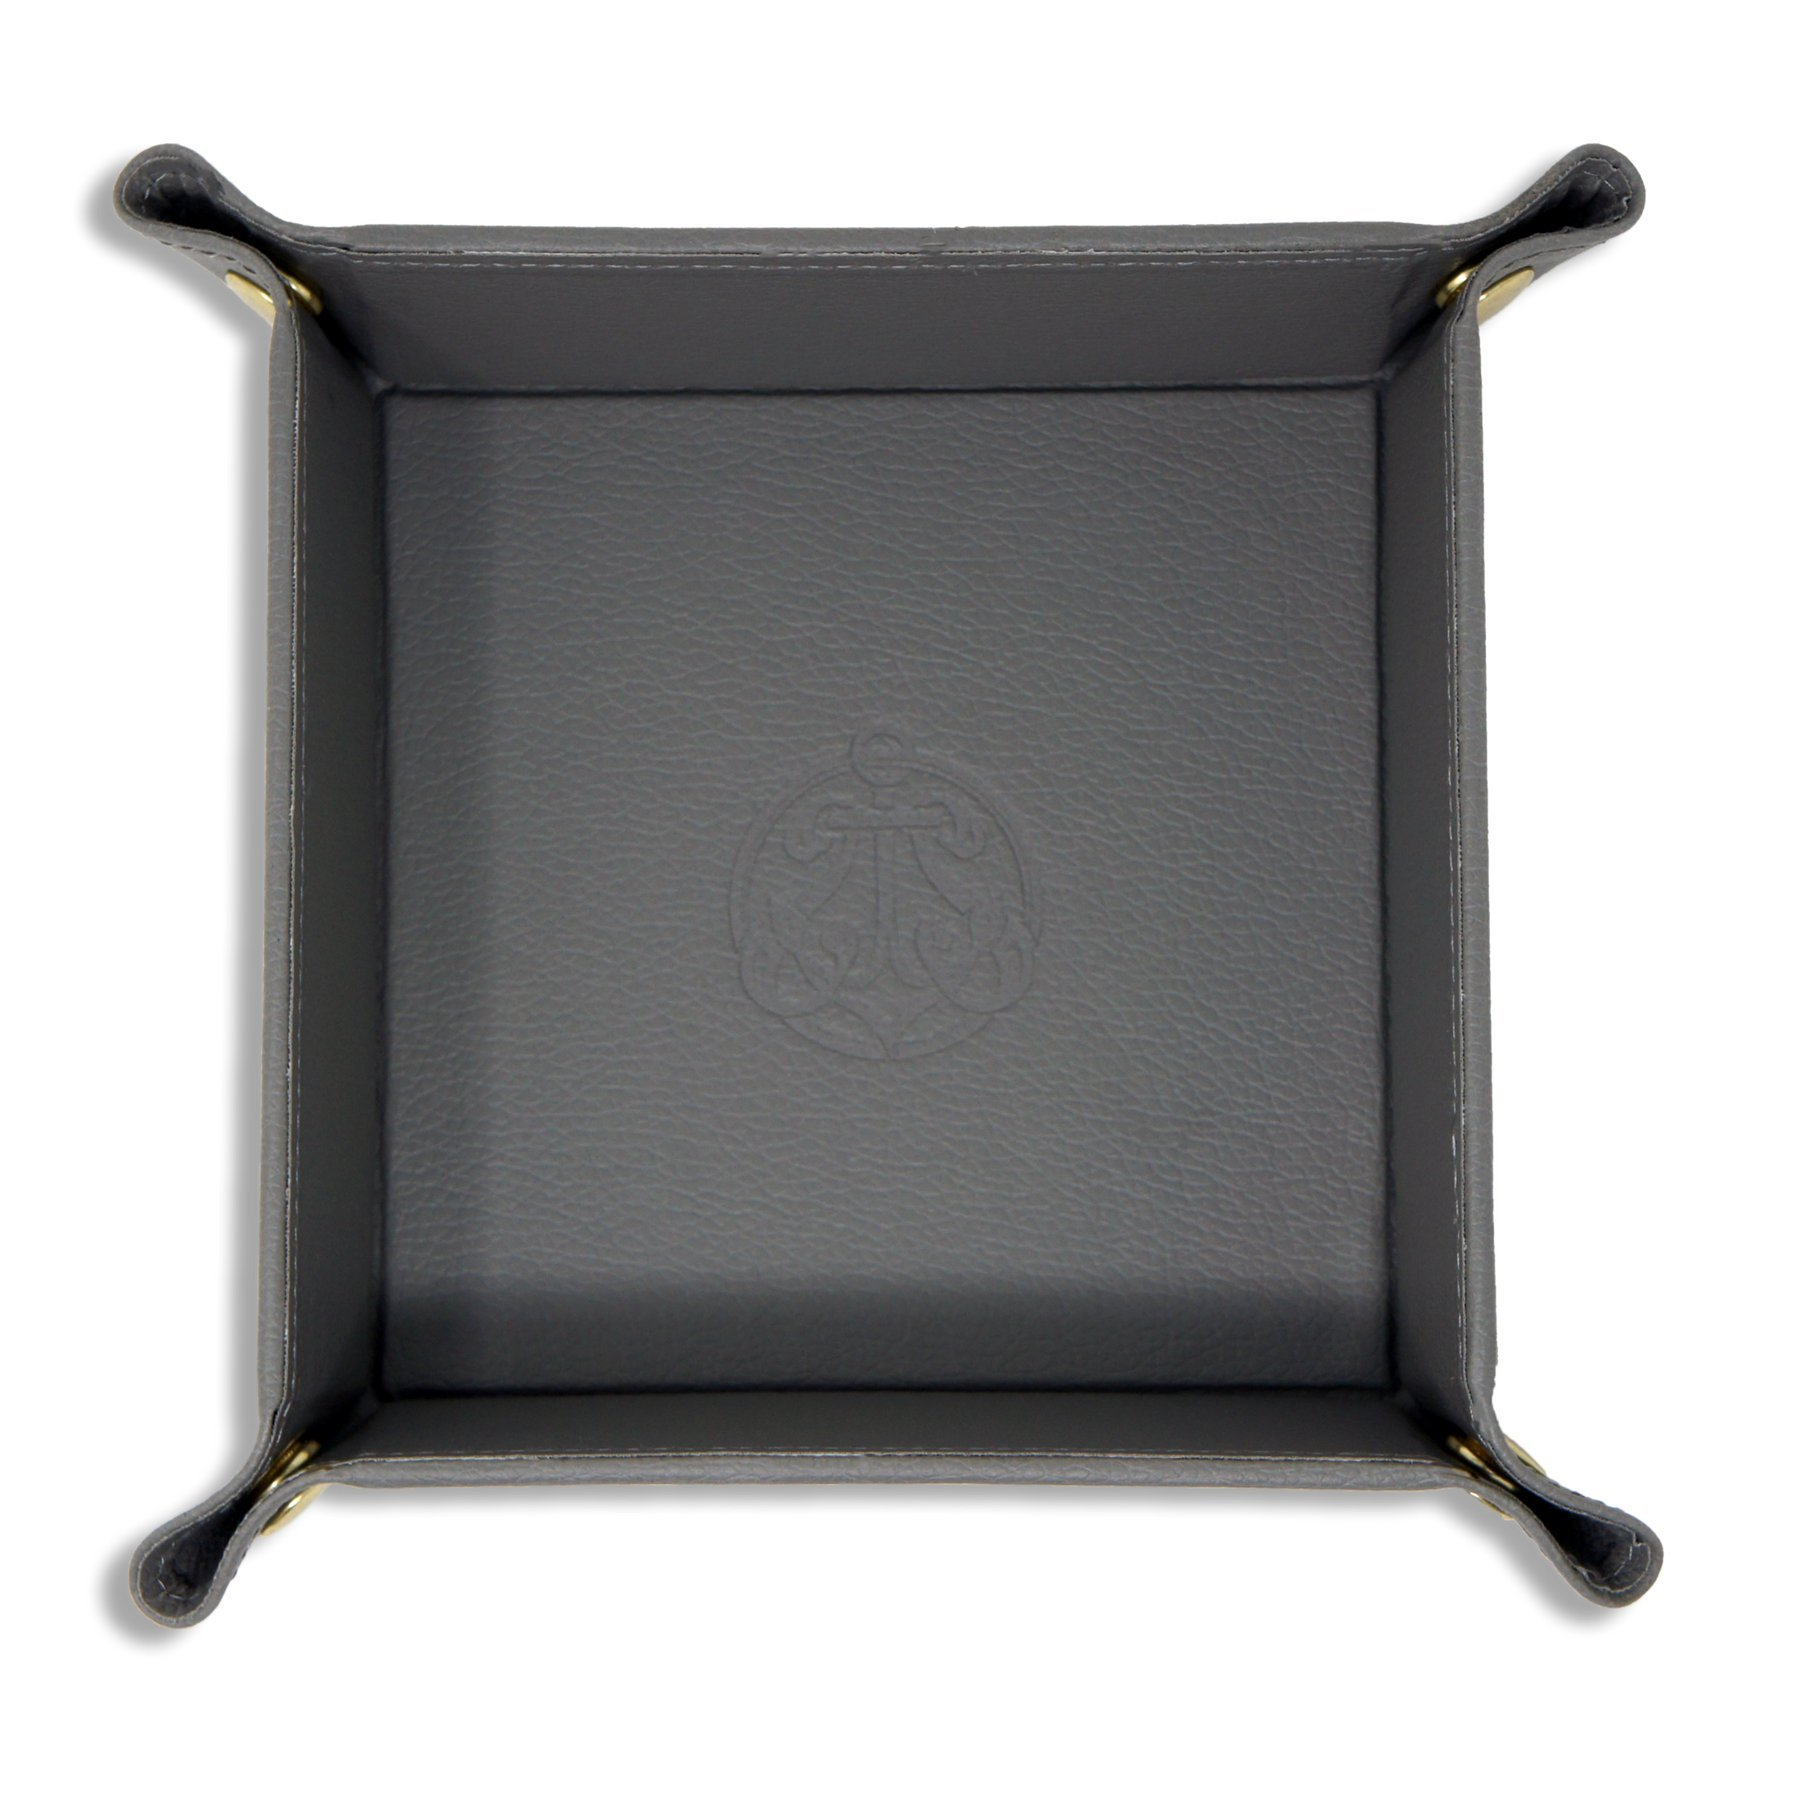 SIVEL + SHARP Leather Valet Tray - Embossed Catchall Tray with Brass Snaps (Gray) by SIVEL + SHARP